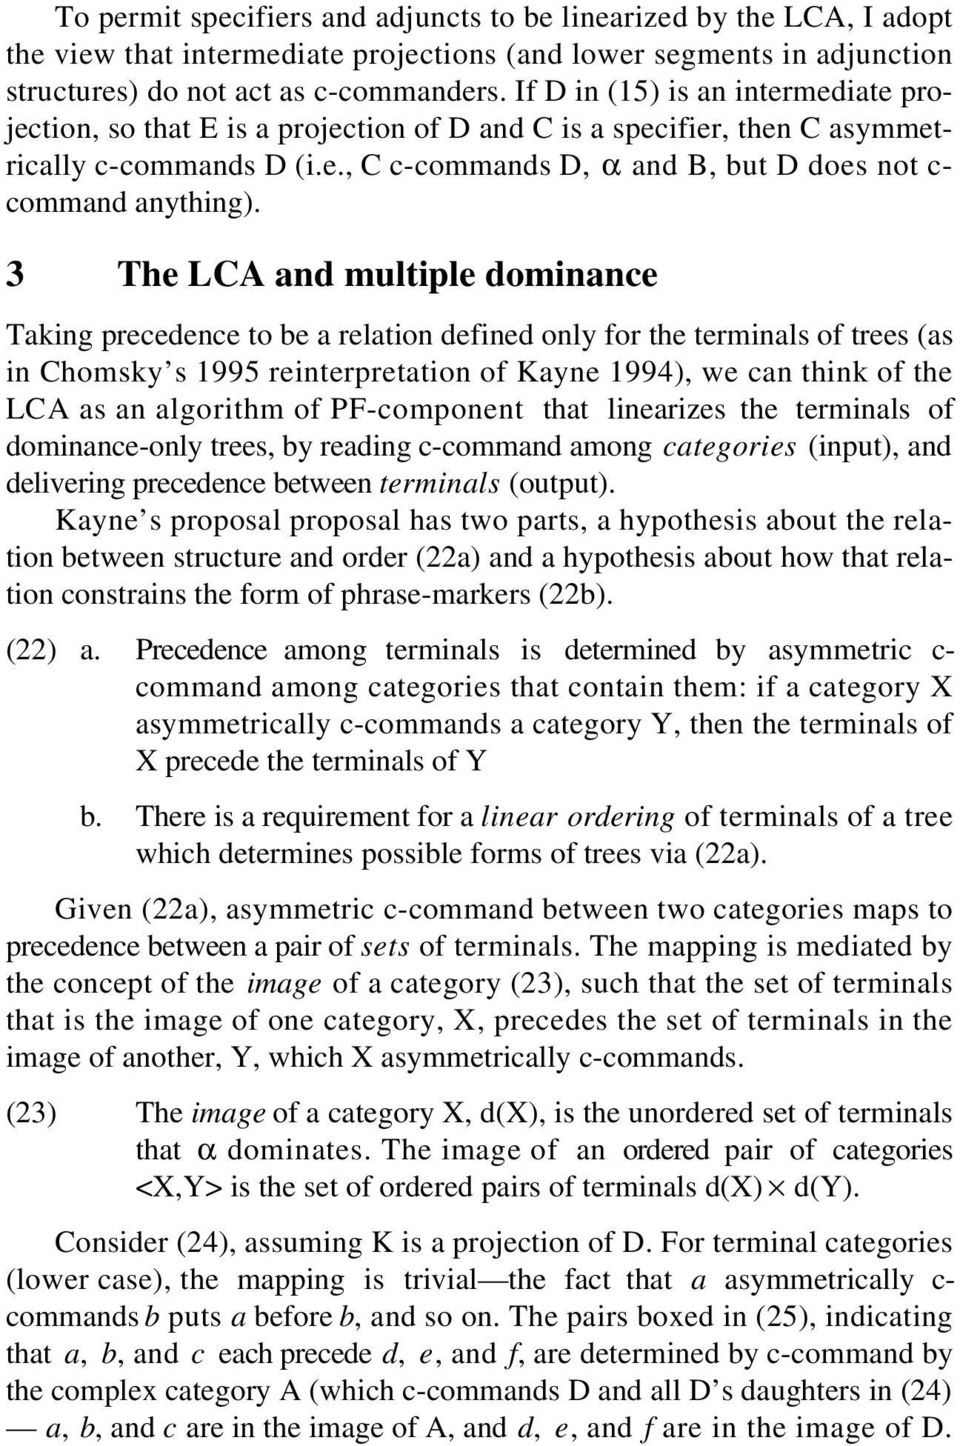 3 The LCA and multiple dominance Taking precedence to be a relation defined only for the terminals of trees (as in Chomsky s 1995 reinterpretation of Kayne 1994), we can think of the LCA as an